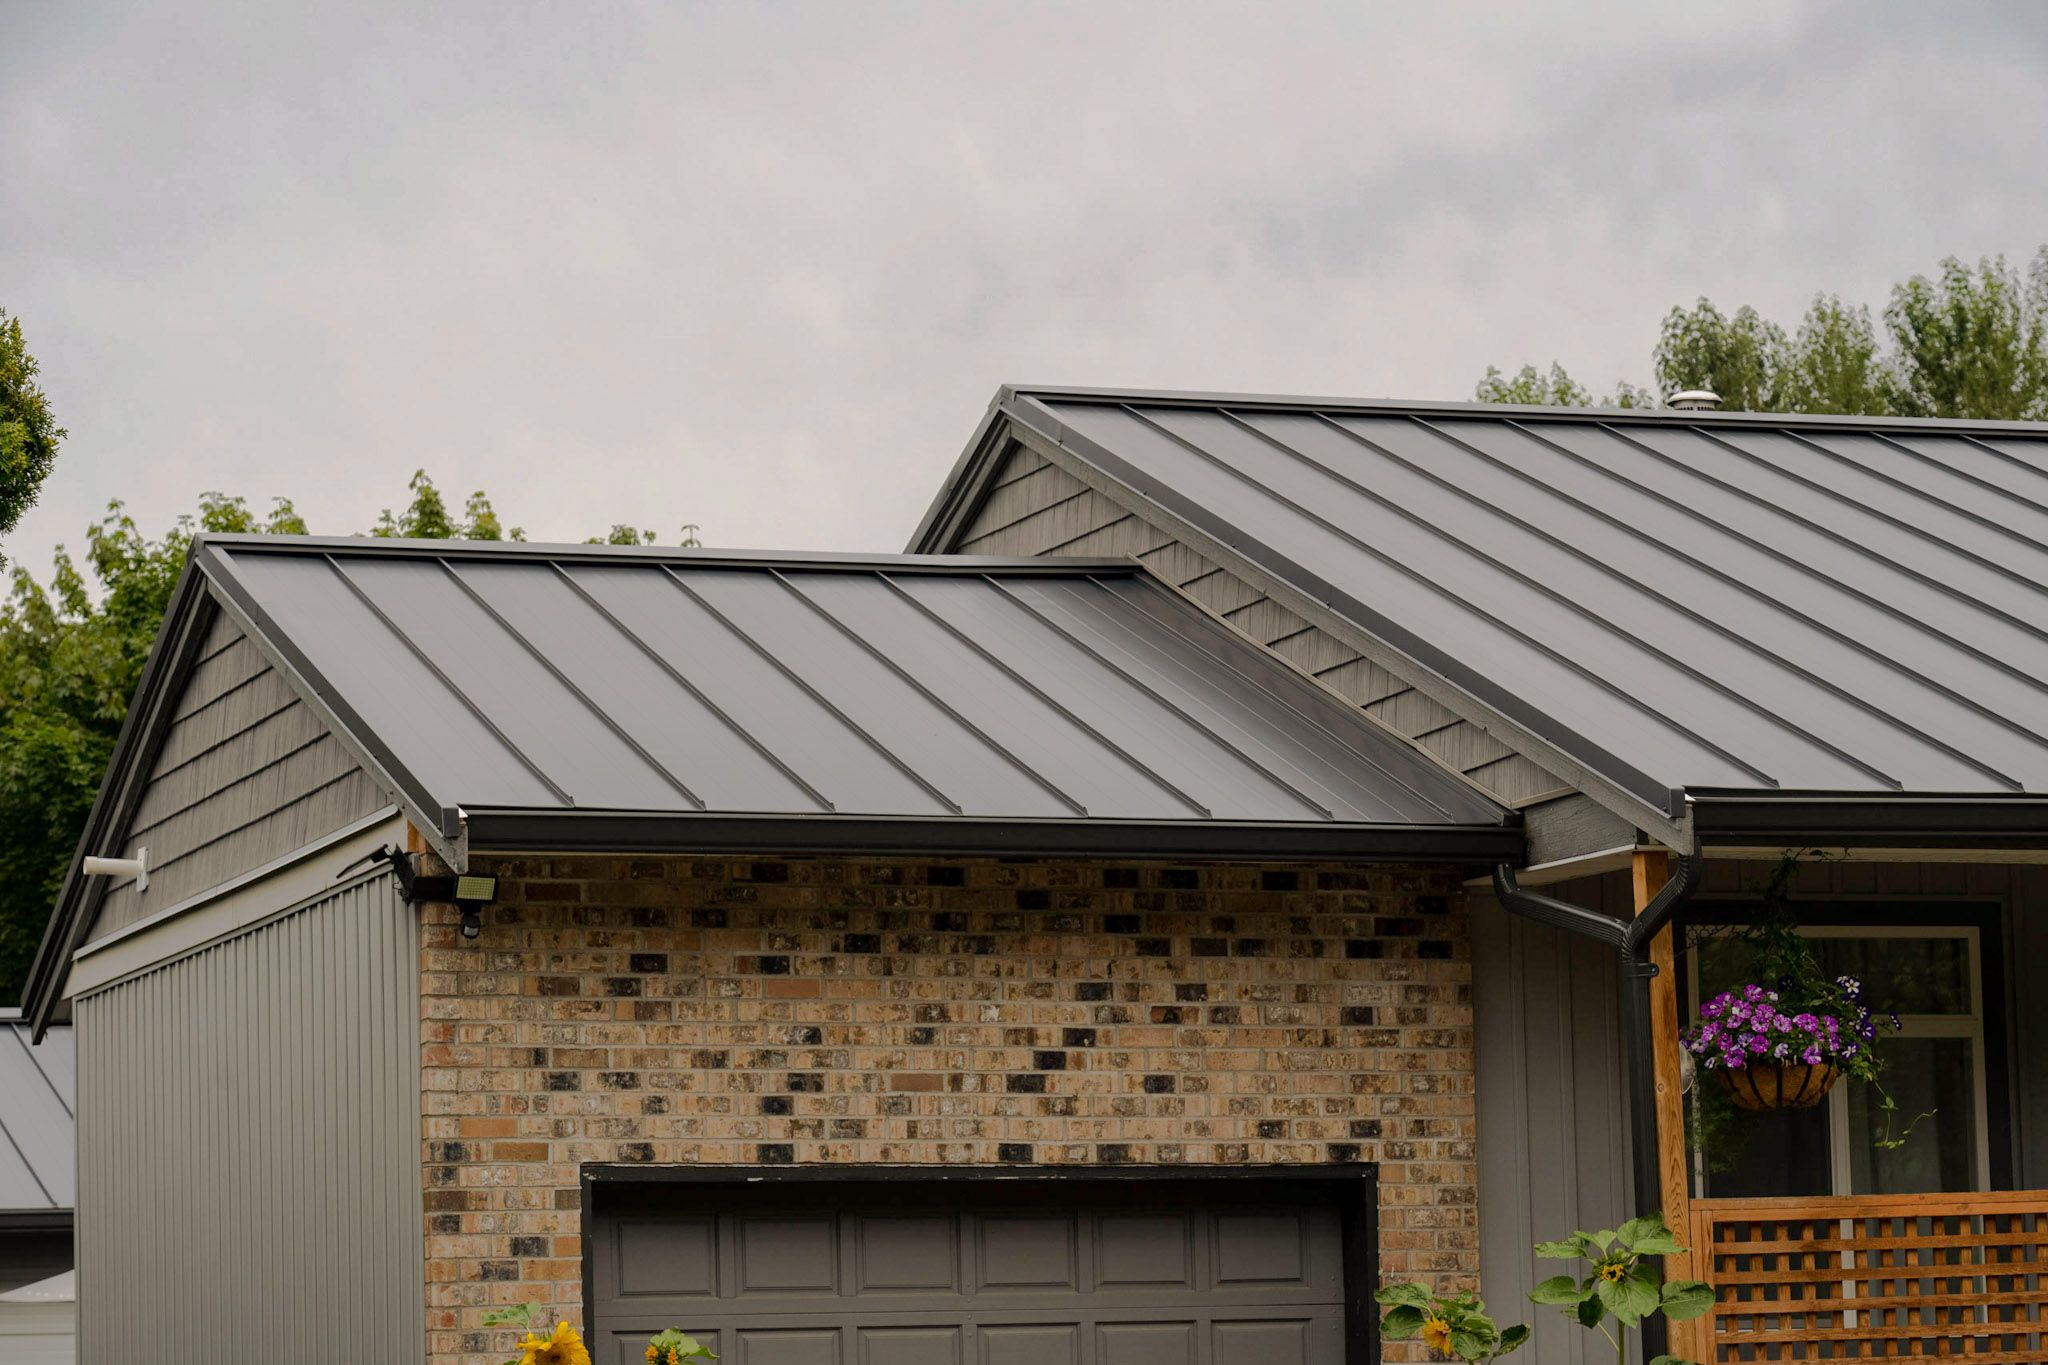 Standing Seam Interlock Metal Roofing In 2020 Metal Roof Houses Standing Seam Standing Seam Metal Roof